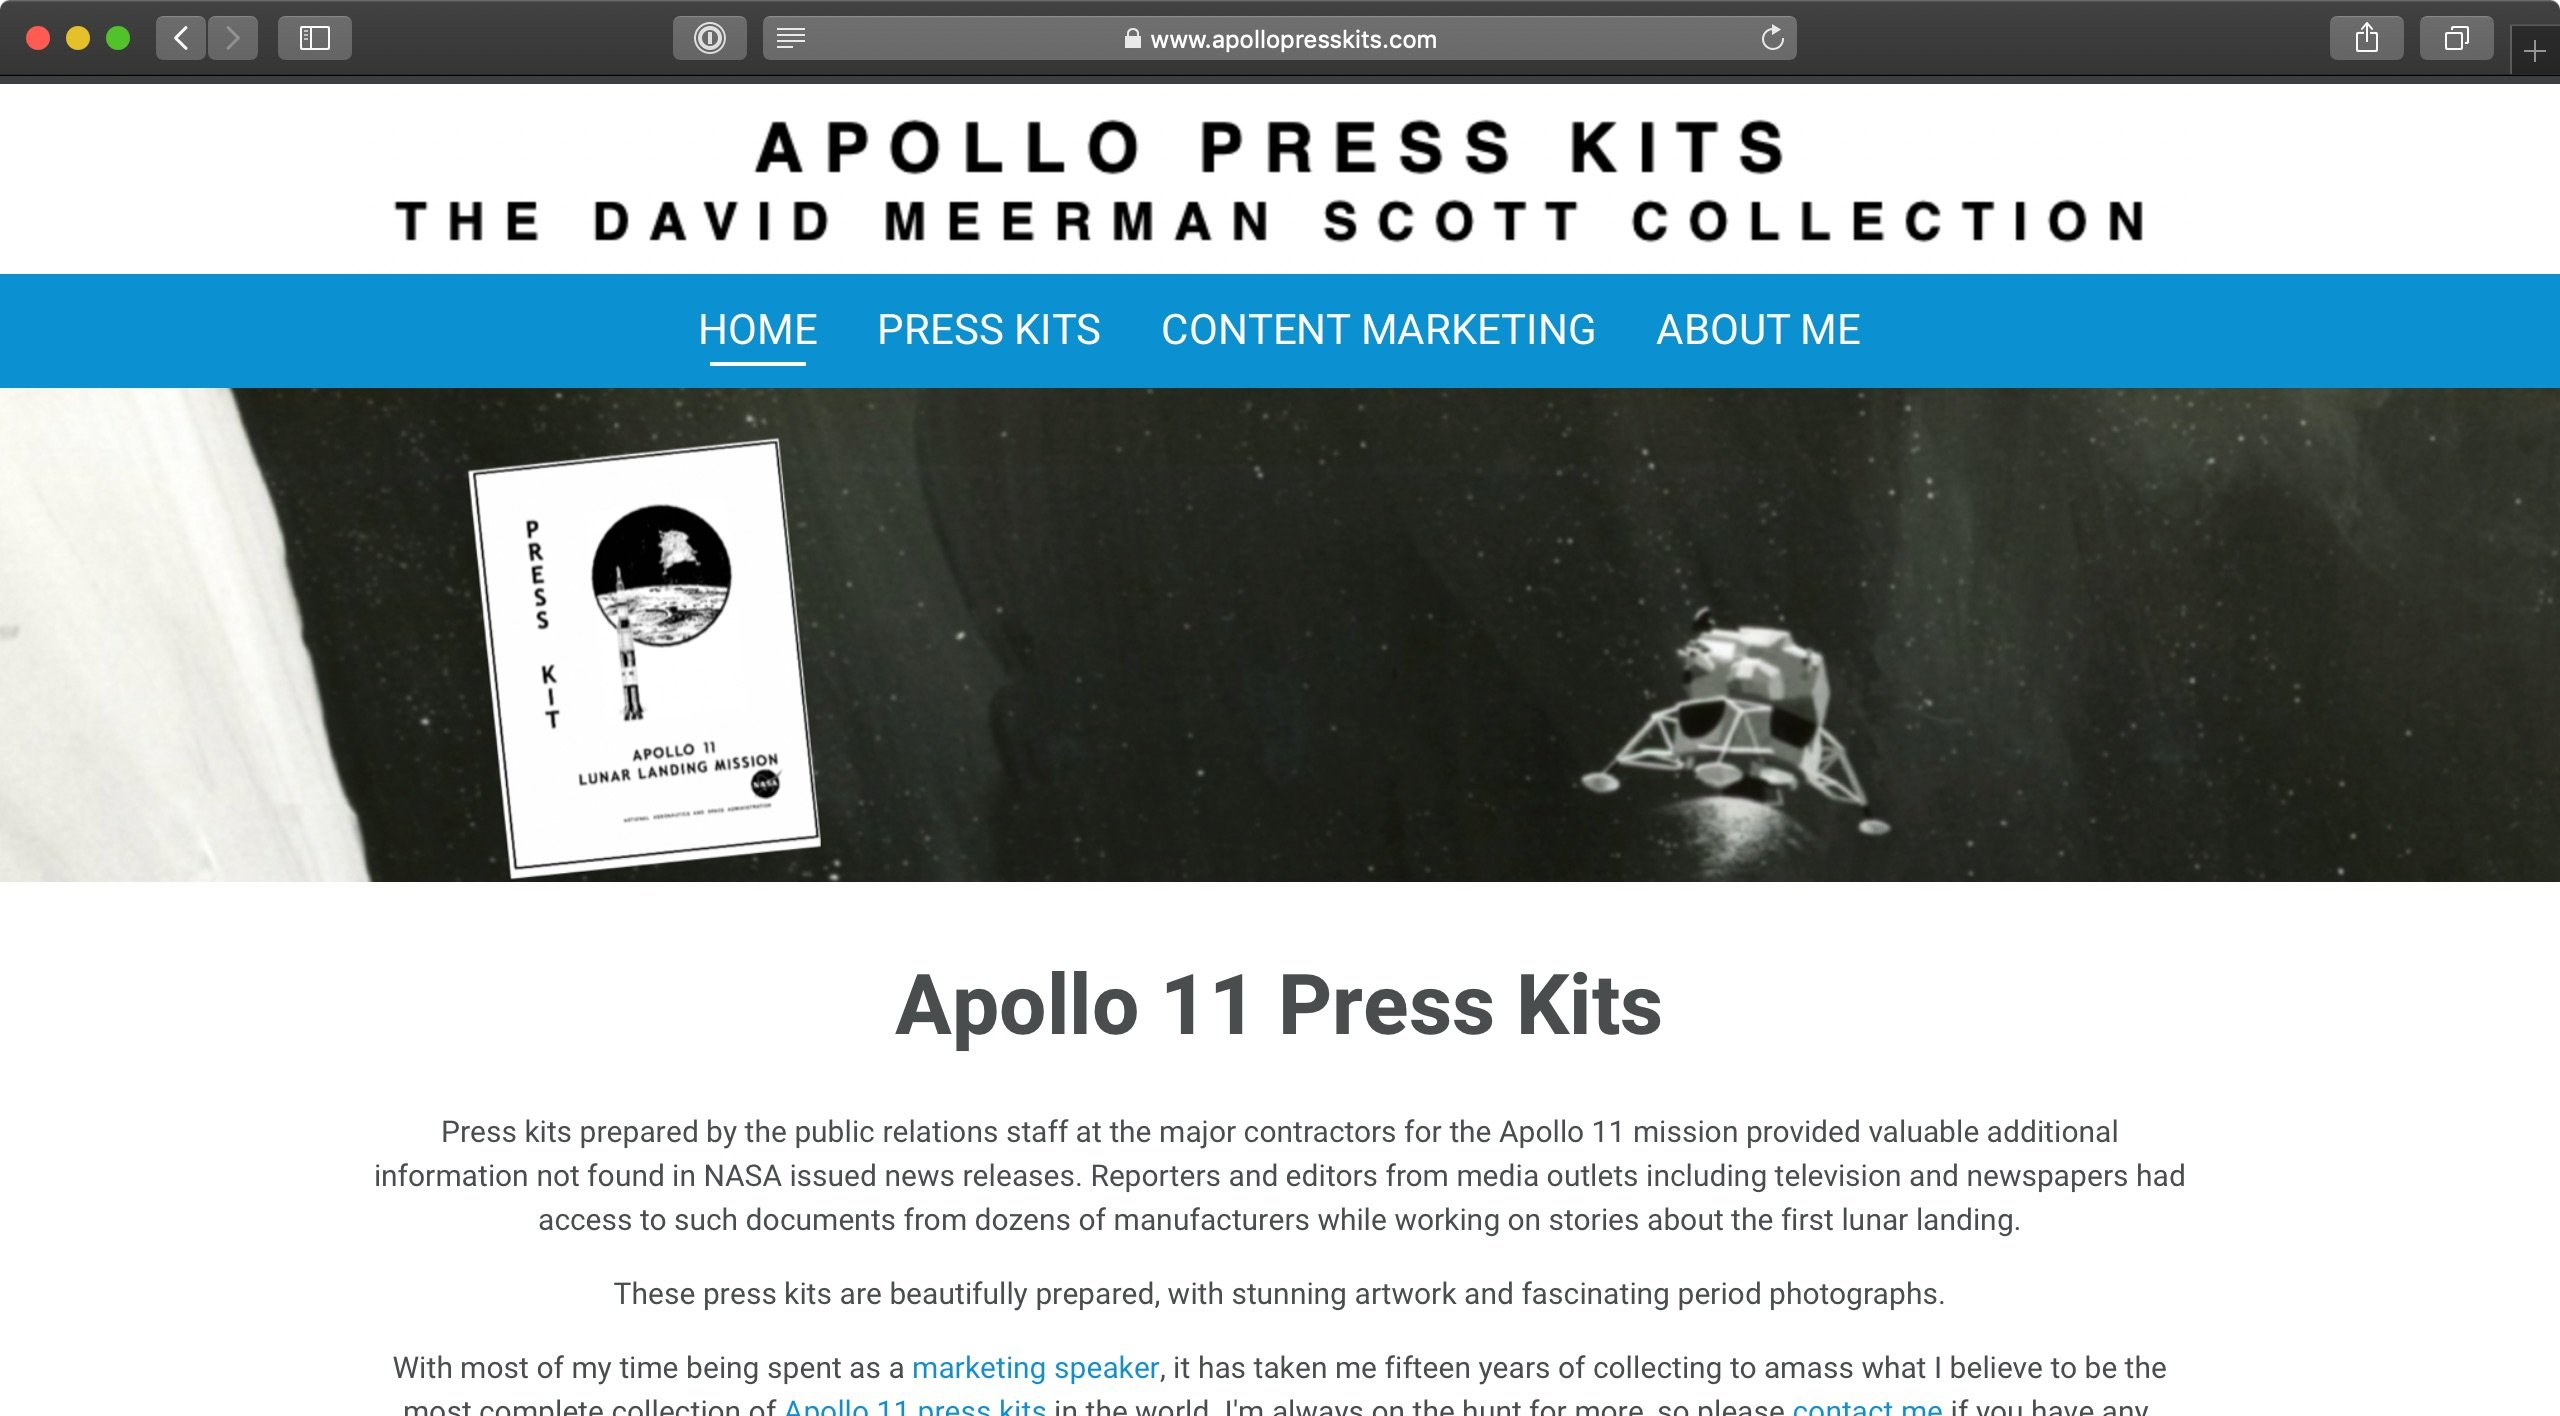 LinkTipp: Apollo 11 Press Kits